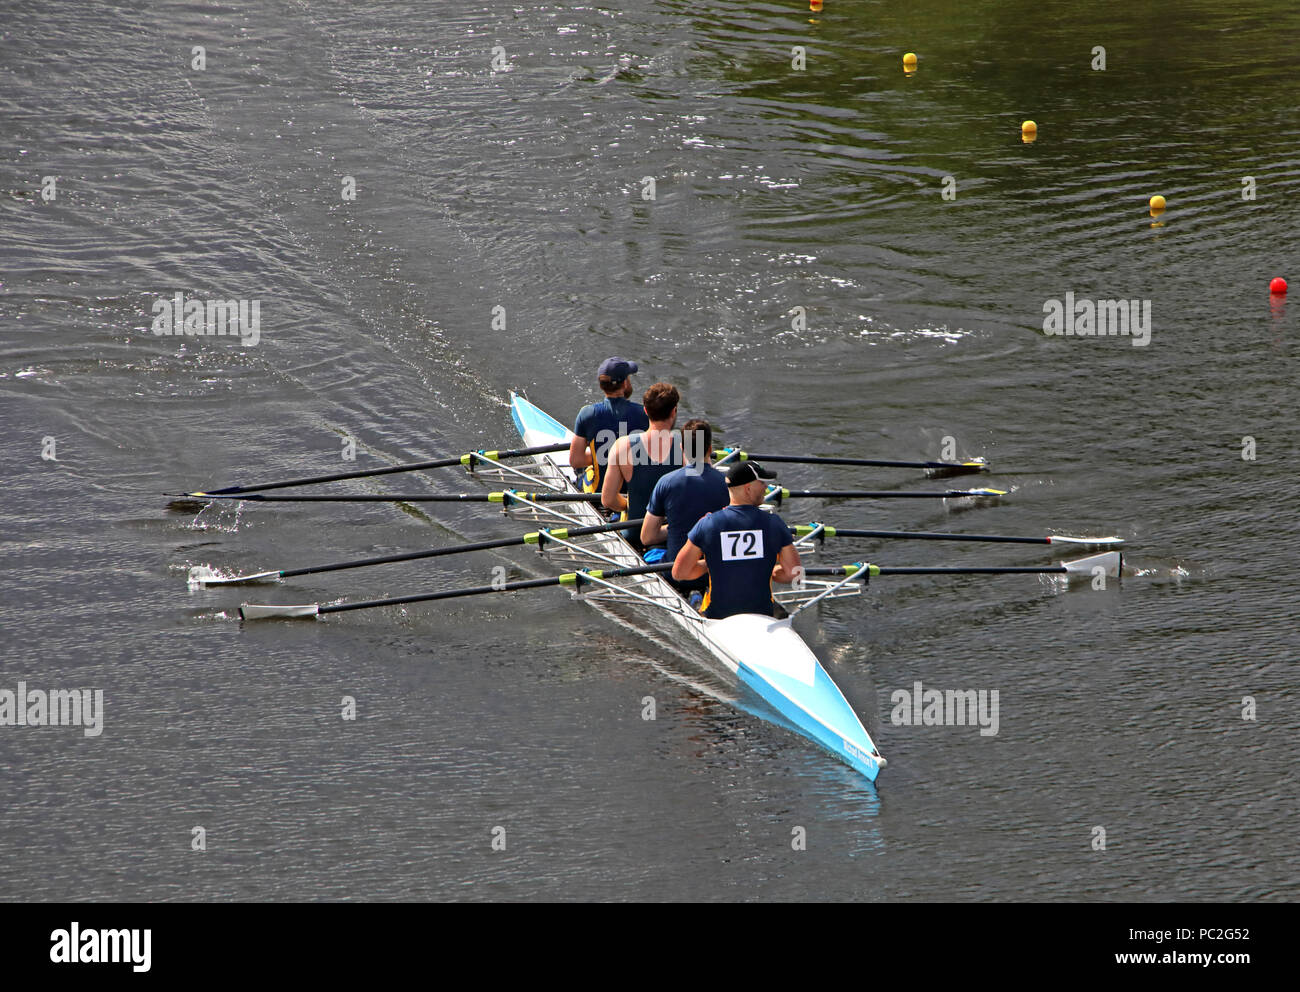 Lancaster Rowing Club team, Men coxless at Warrington Rowing Club 2018 Summer regatta, Howley lane, Mersey River, Cheshire, North West England, UK Stock Photo